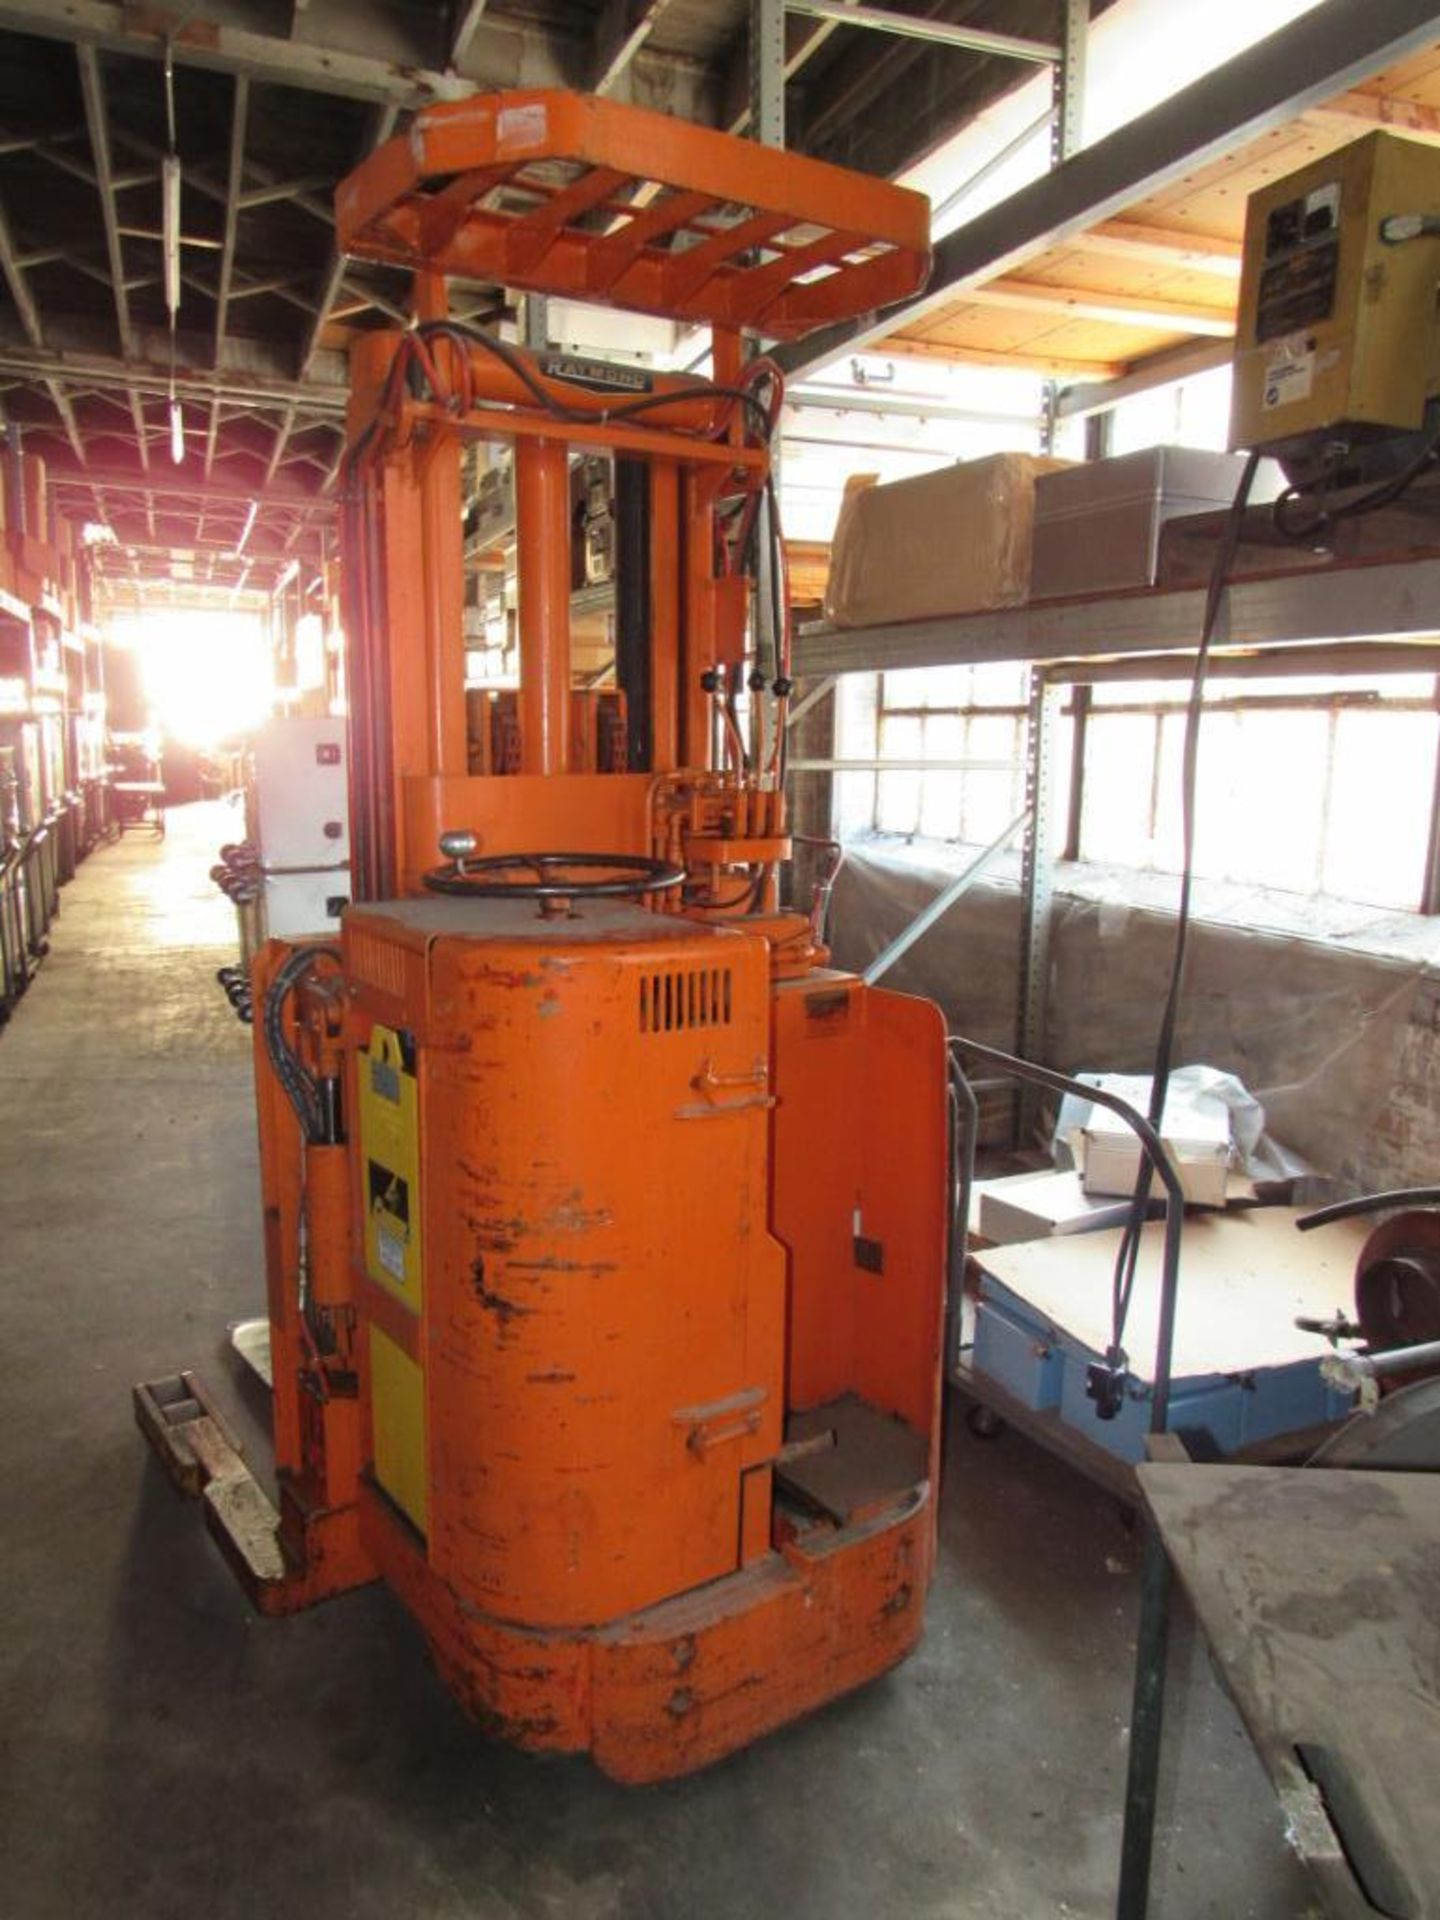 Lot 140 - Raymond 3000 lb. Stand-up Electric Forklift Model E3RT-0HA, S/N 843-1978, with Charger